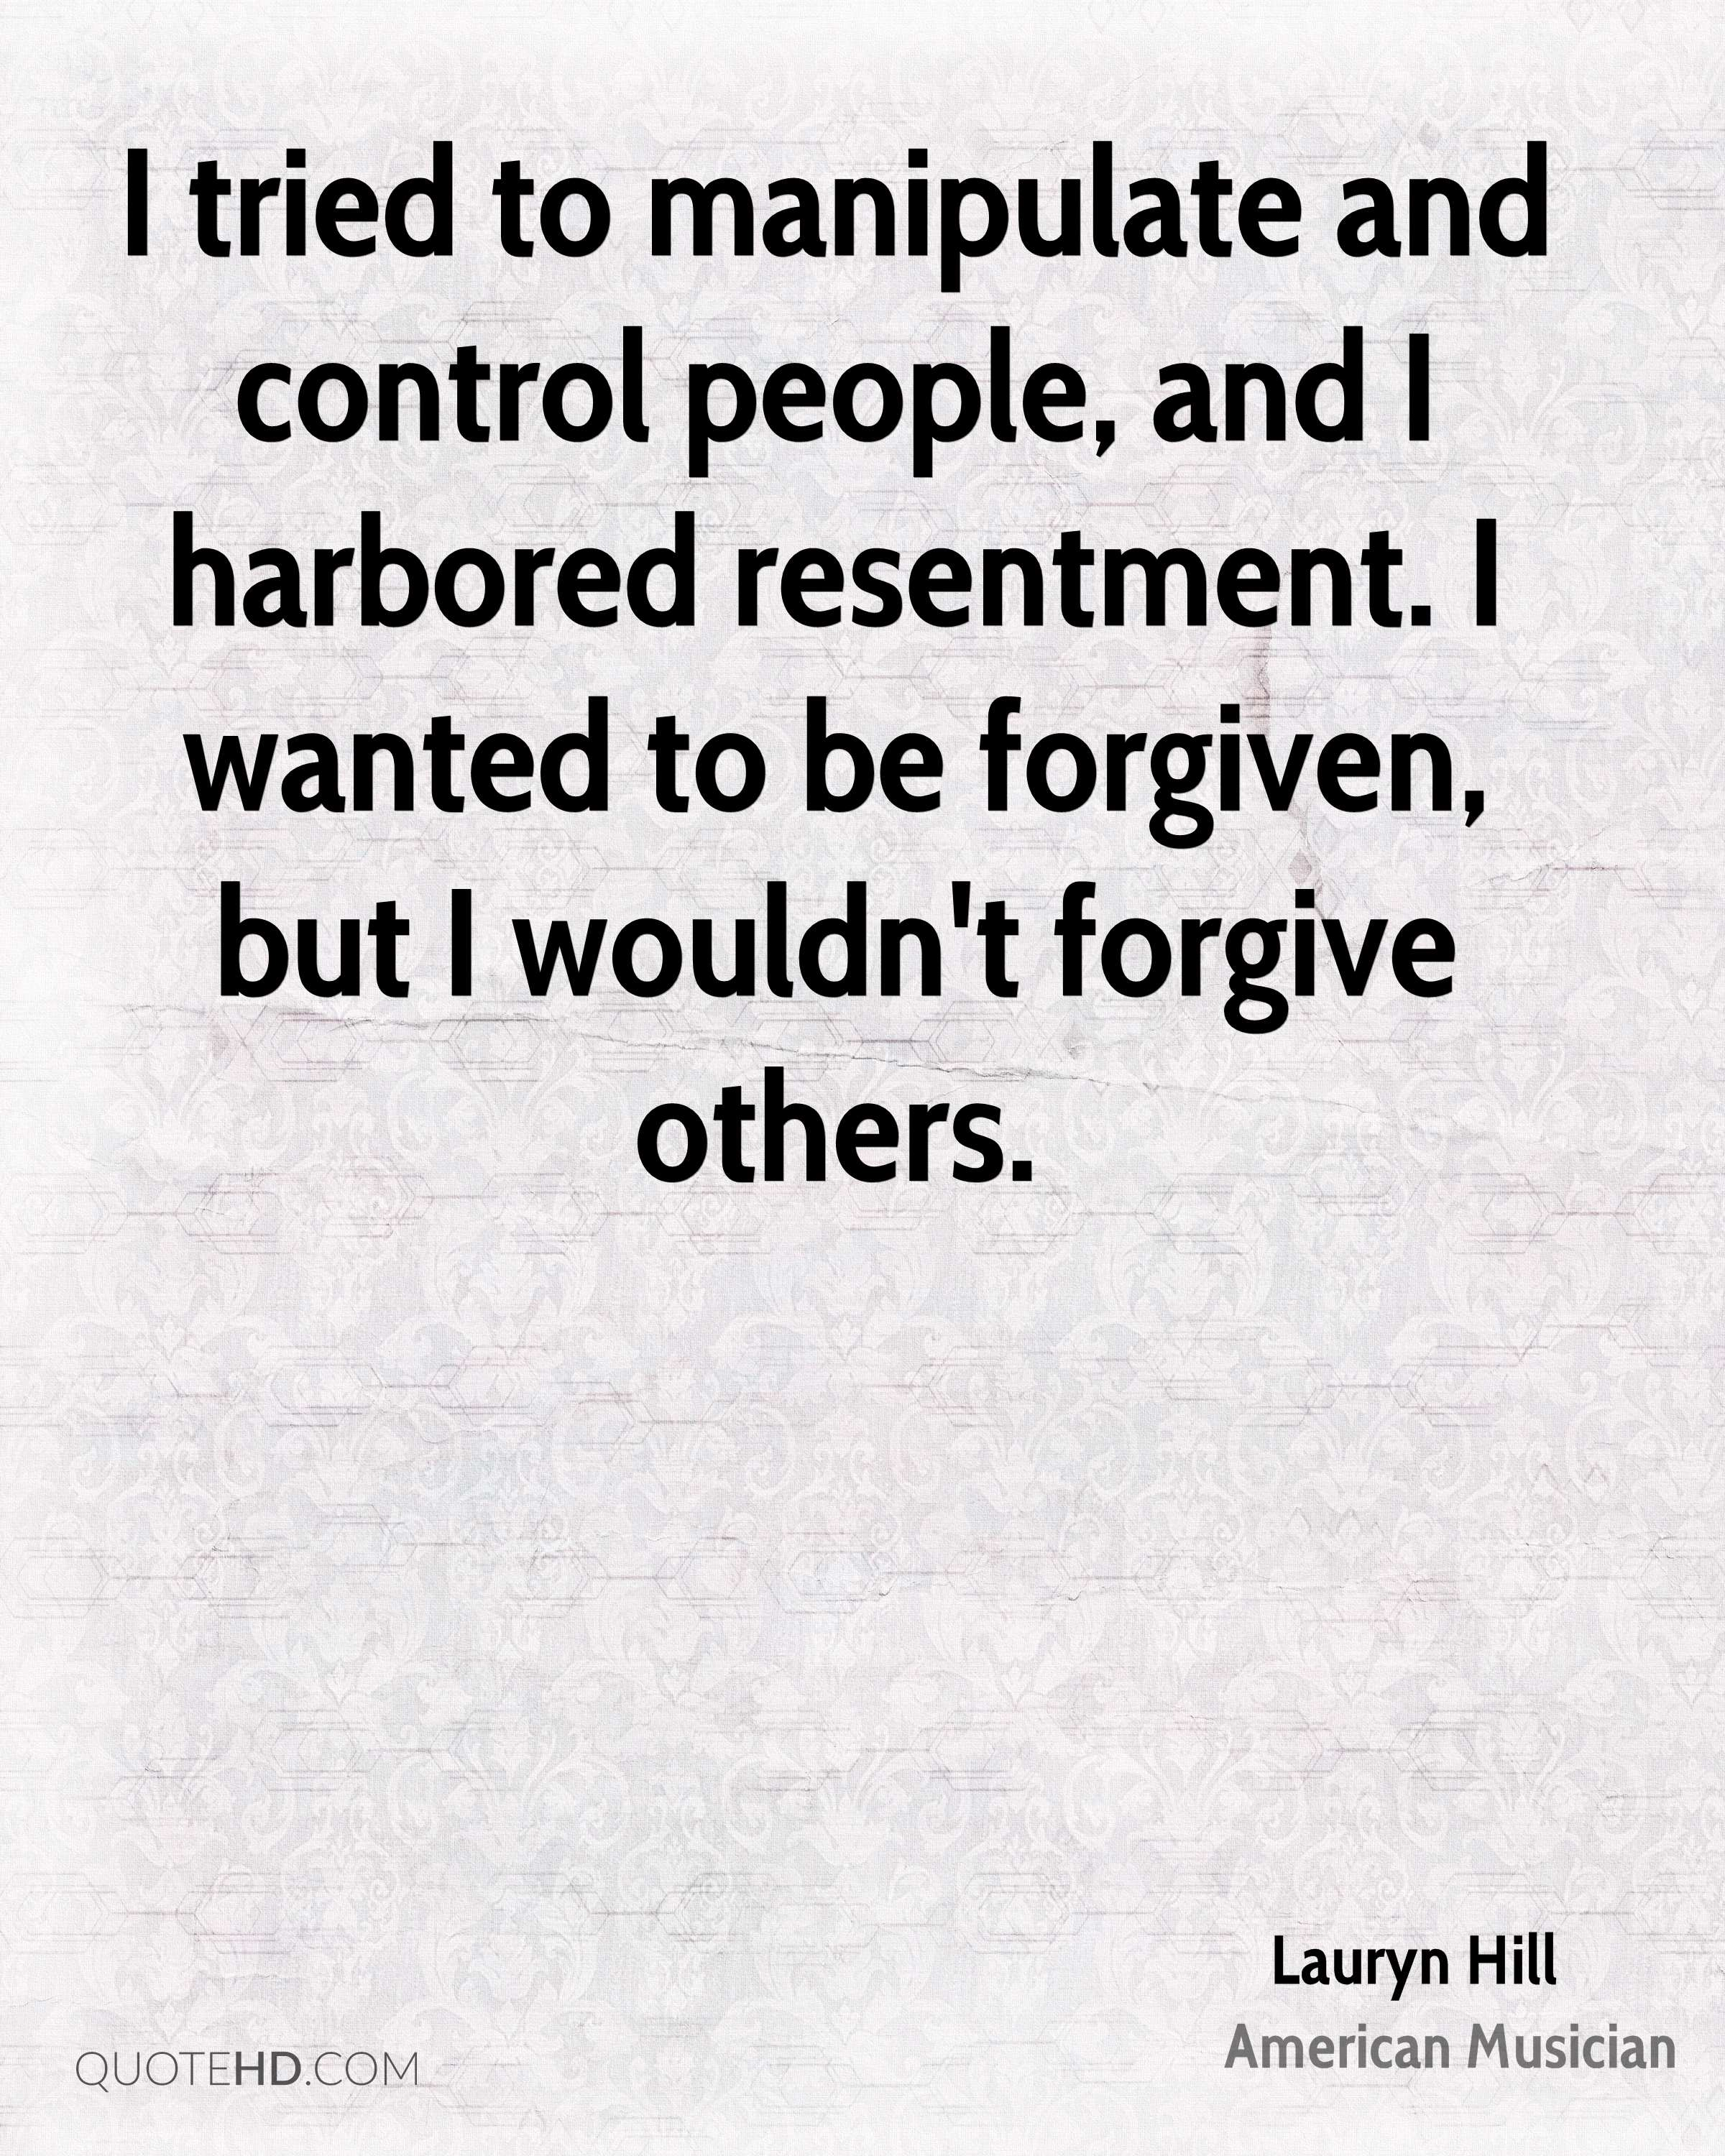 I tried to manipulate and control people, and I harbored resentment. I wanted to be forgiven, but I wouldn't forgive others.